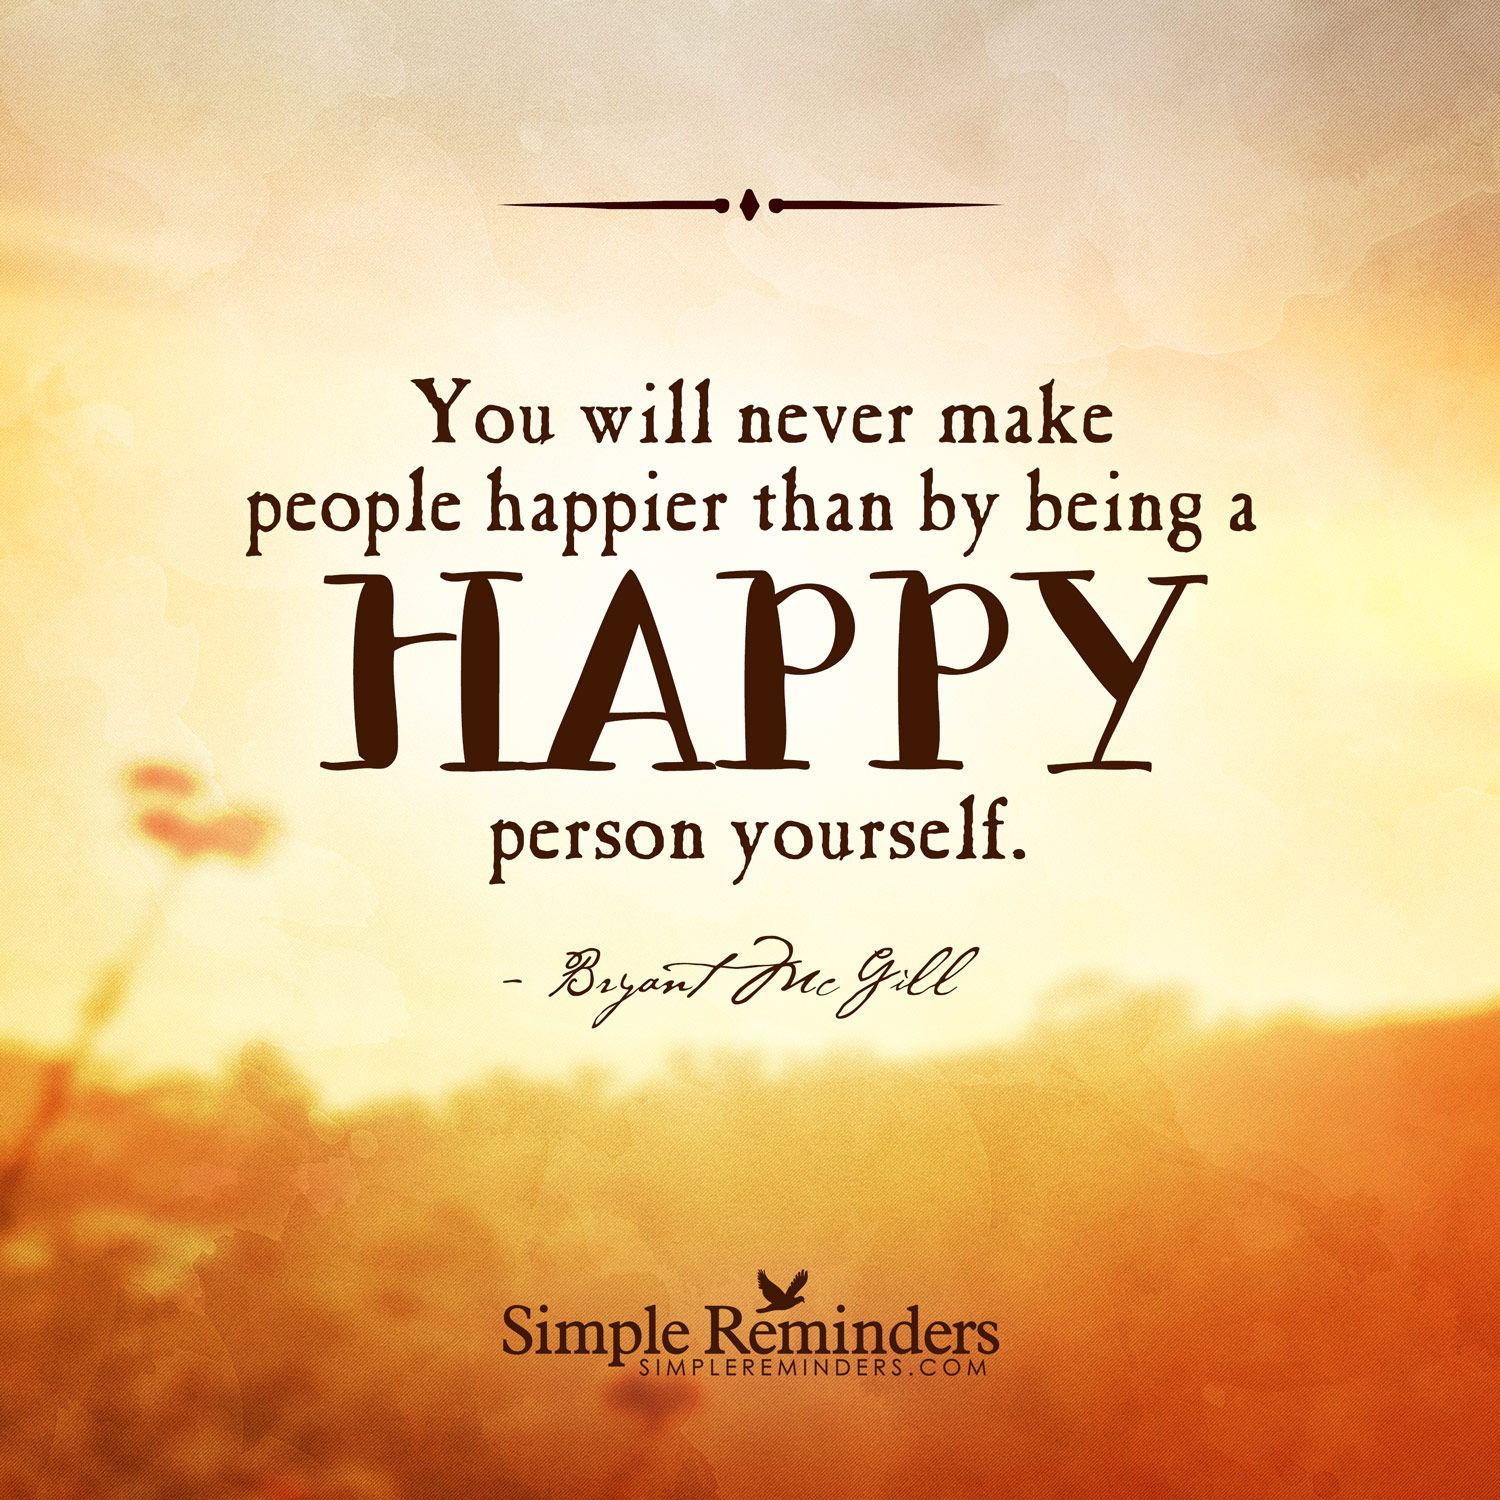 Quotes About Happy Person You Will Never Make People Happier Thanbeing A Happy Person